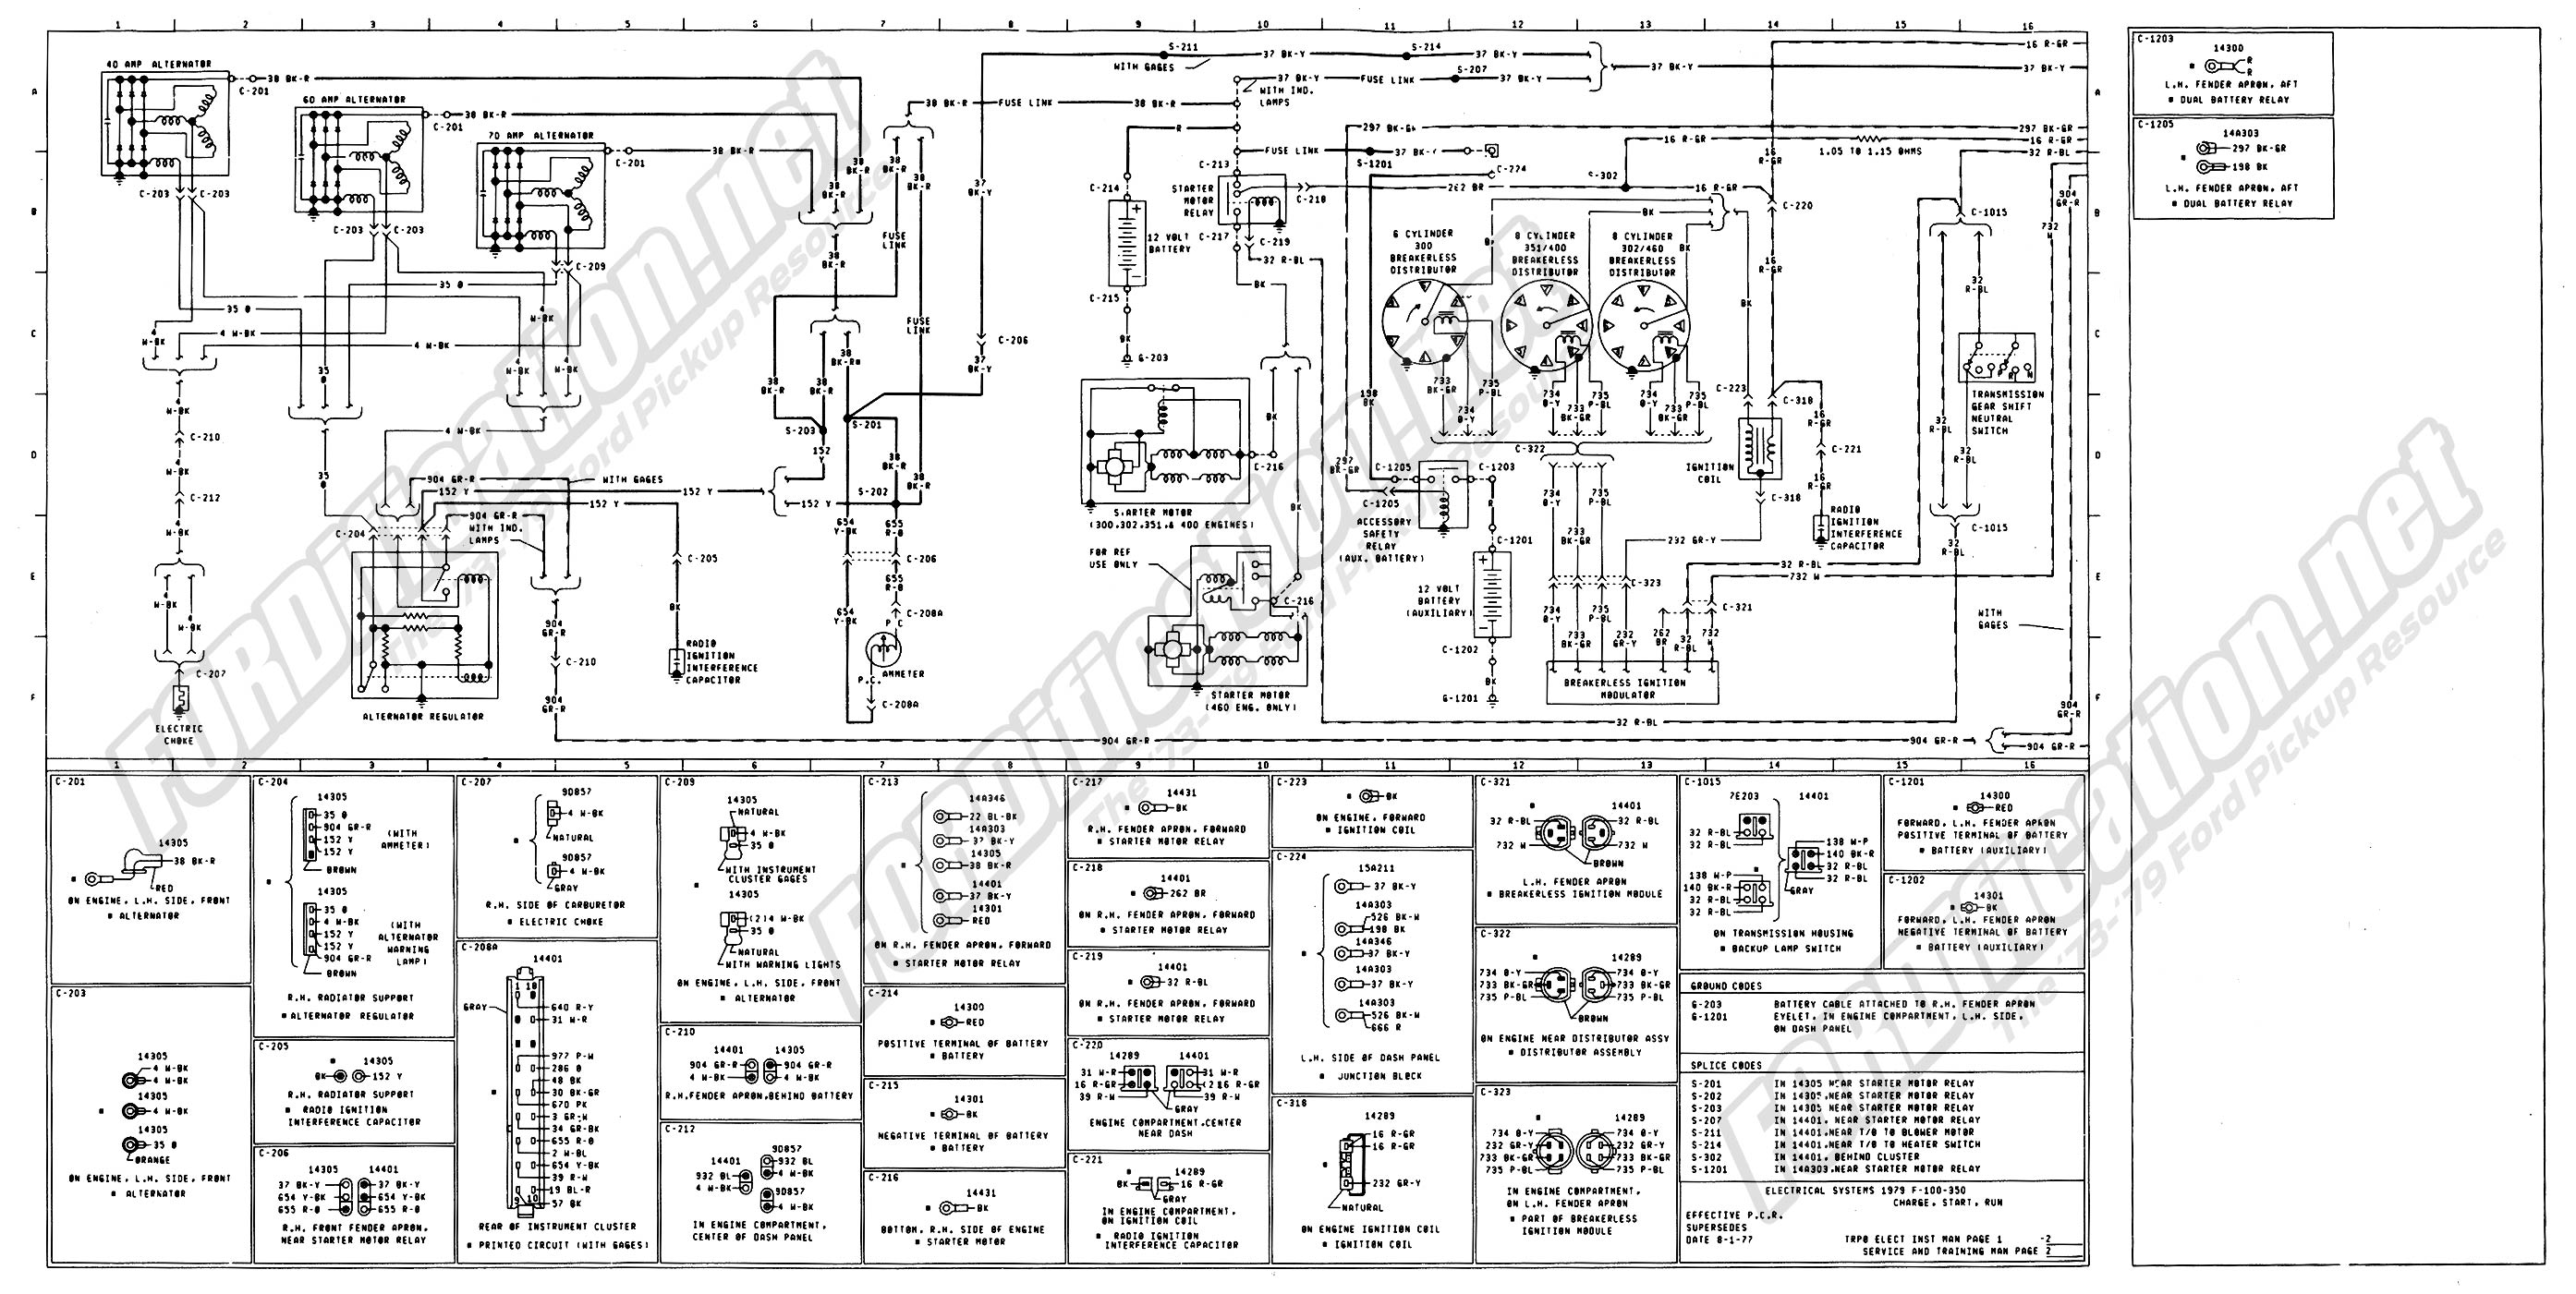 wiring_79master_2of9 1973 1979 ford truck wiring diagrams & schematics fordification net  at virtualis.co